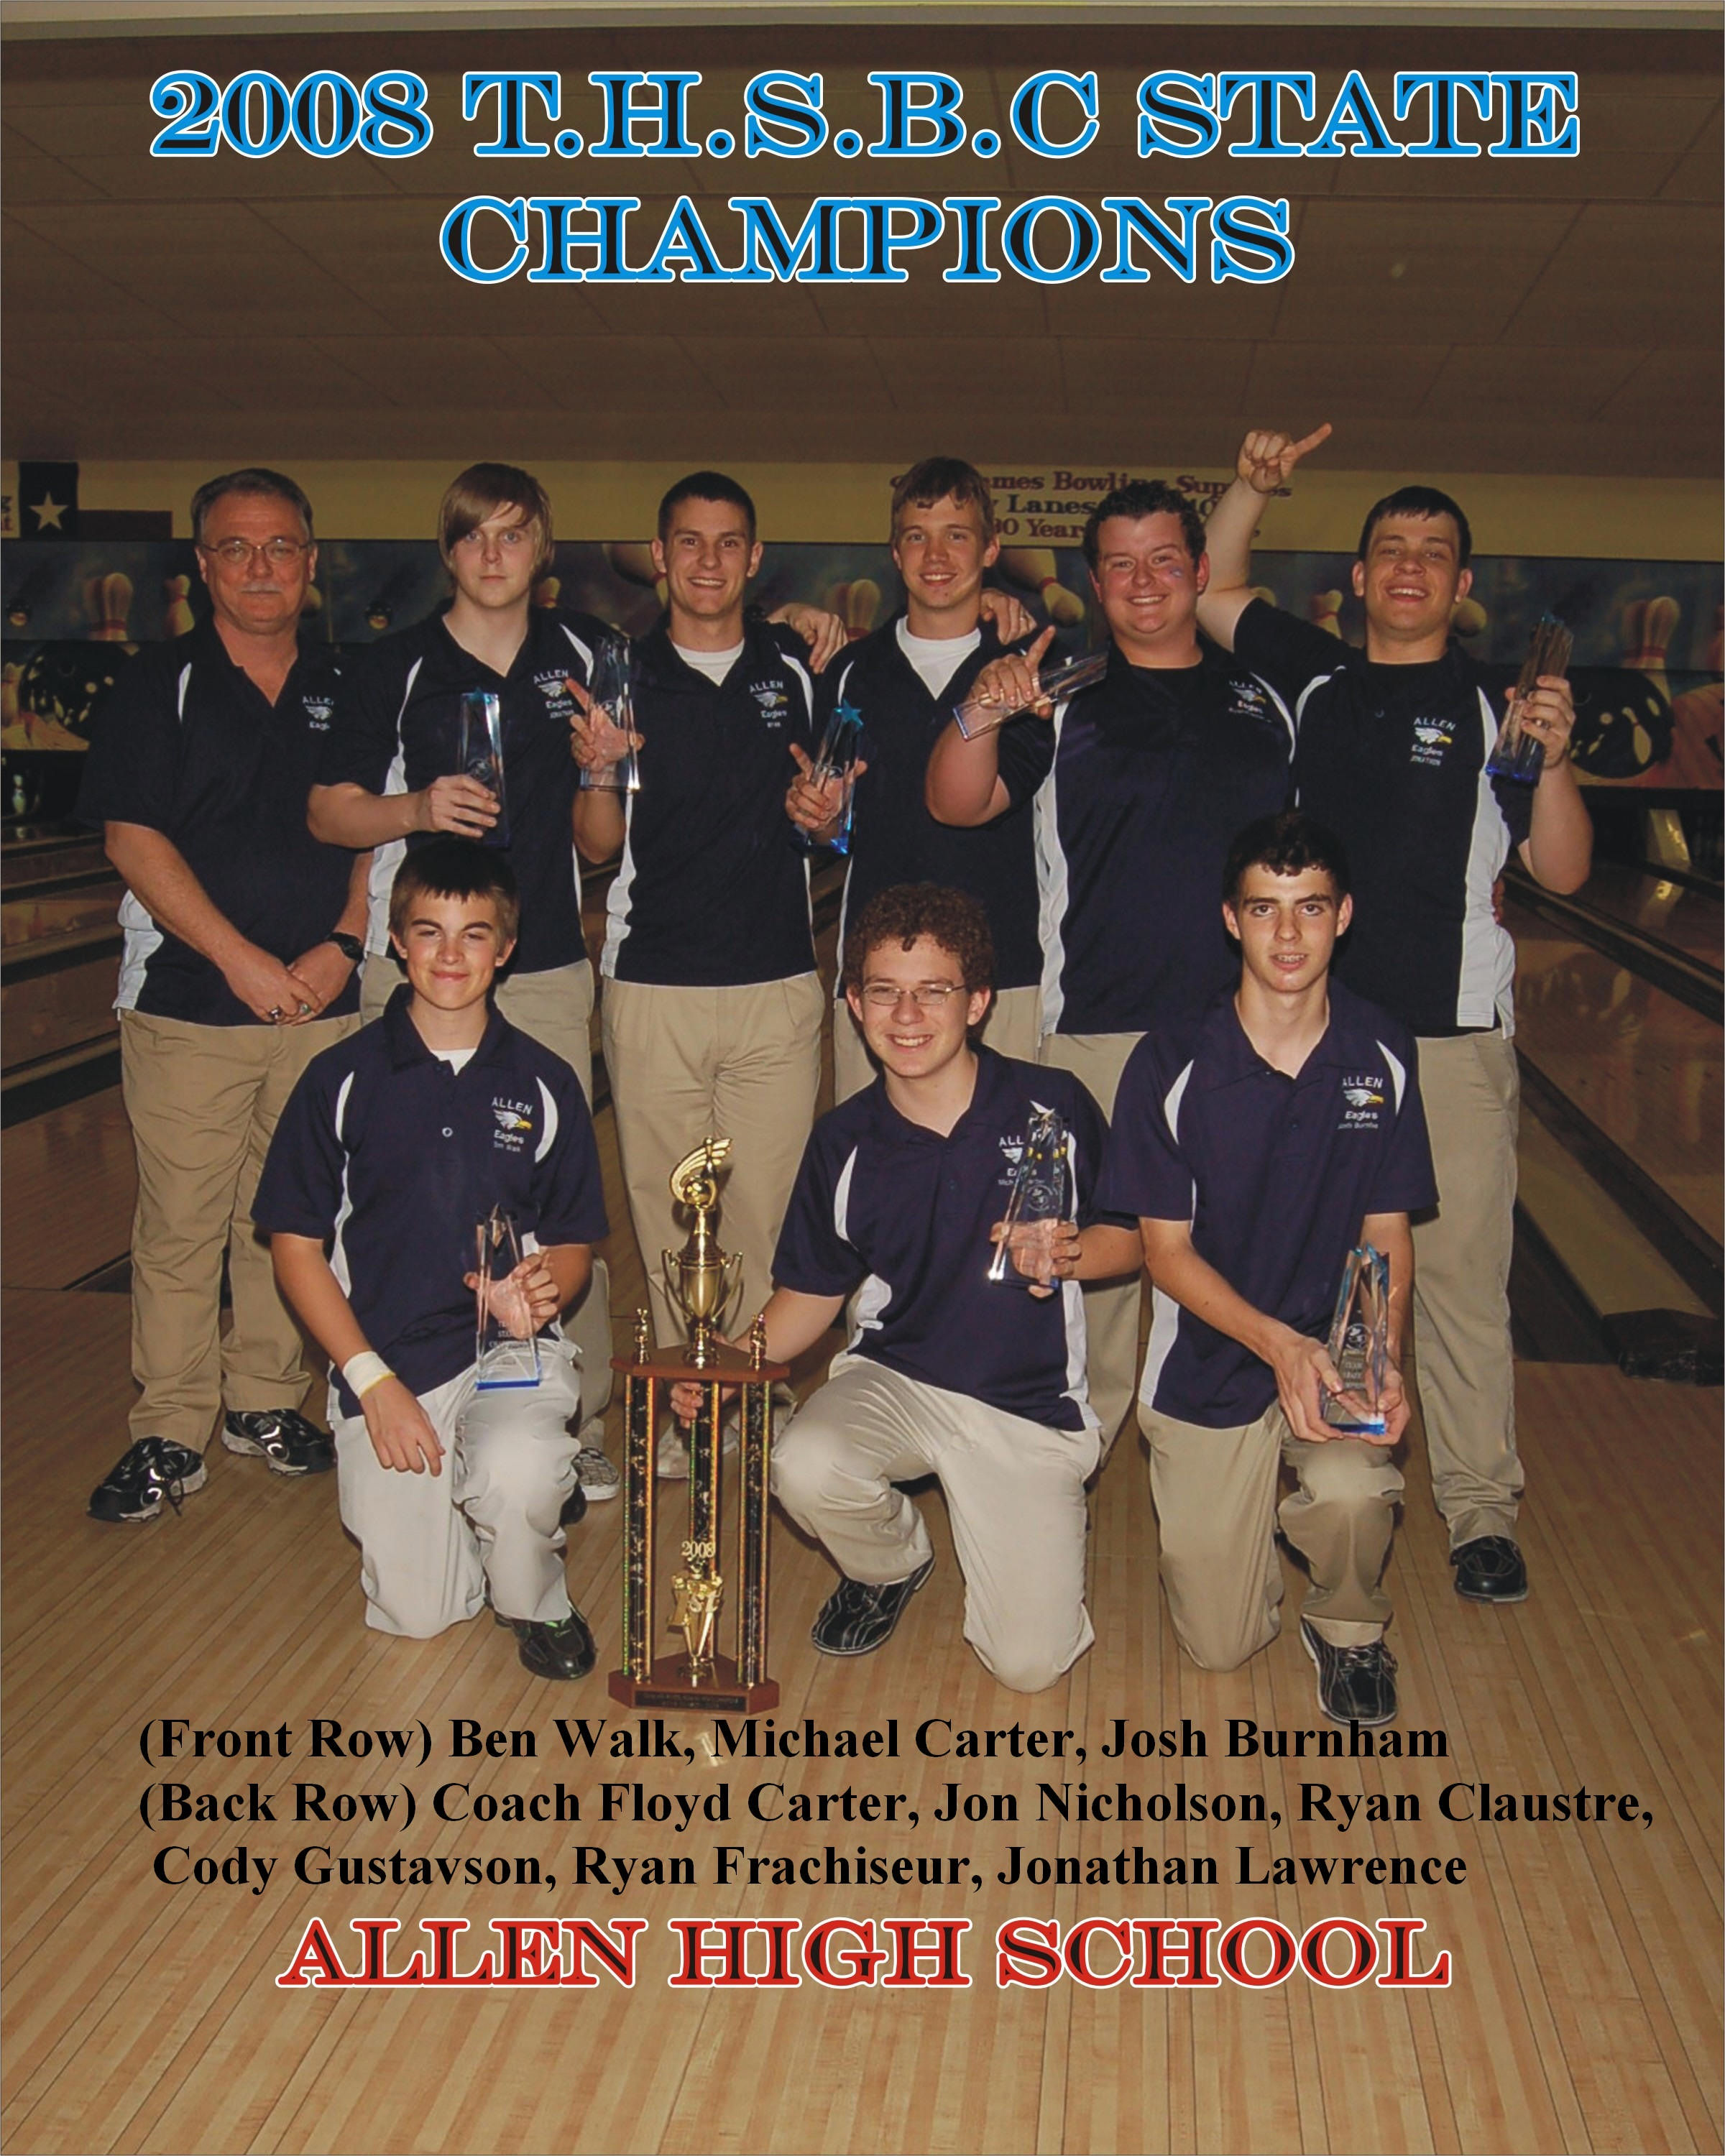 2008 Boys Team Champs